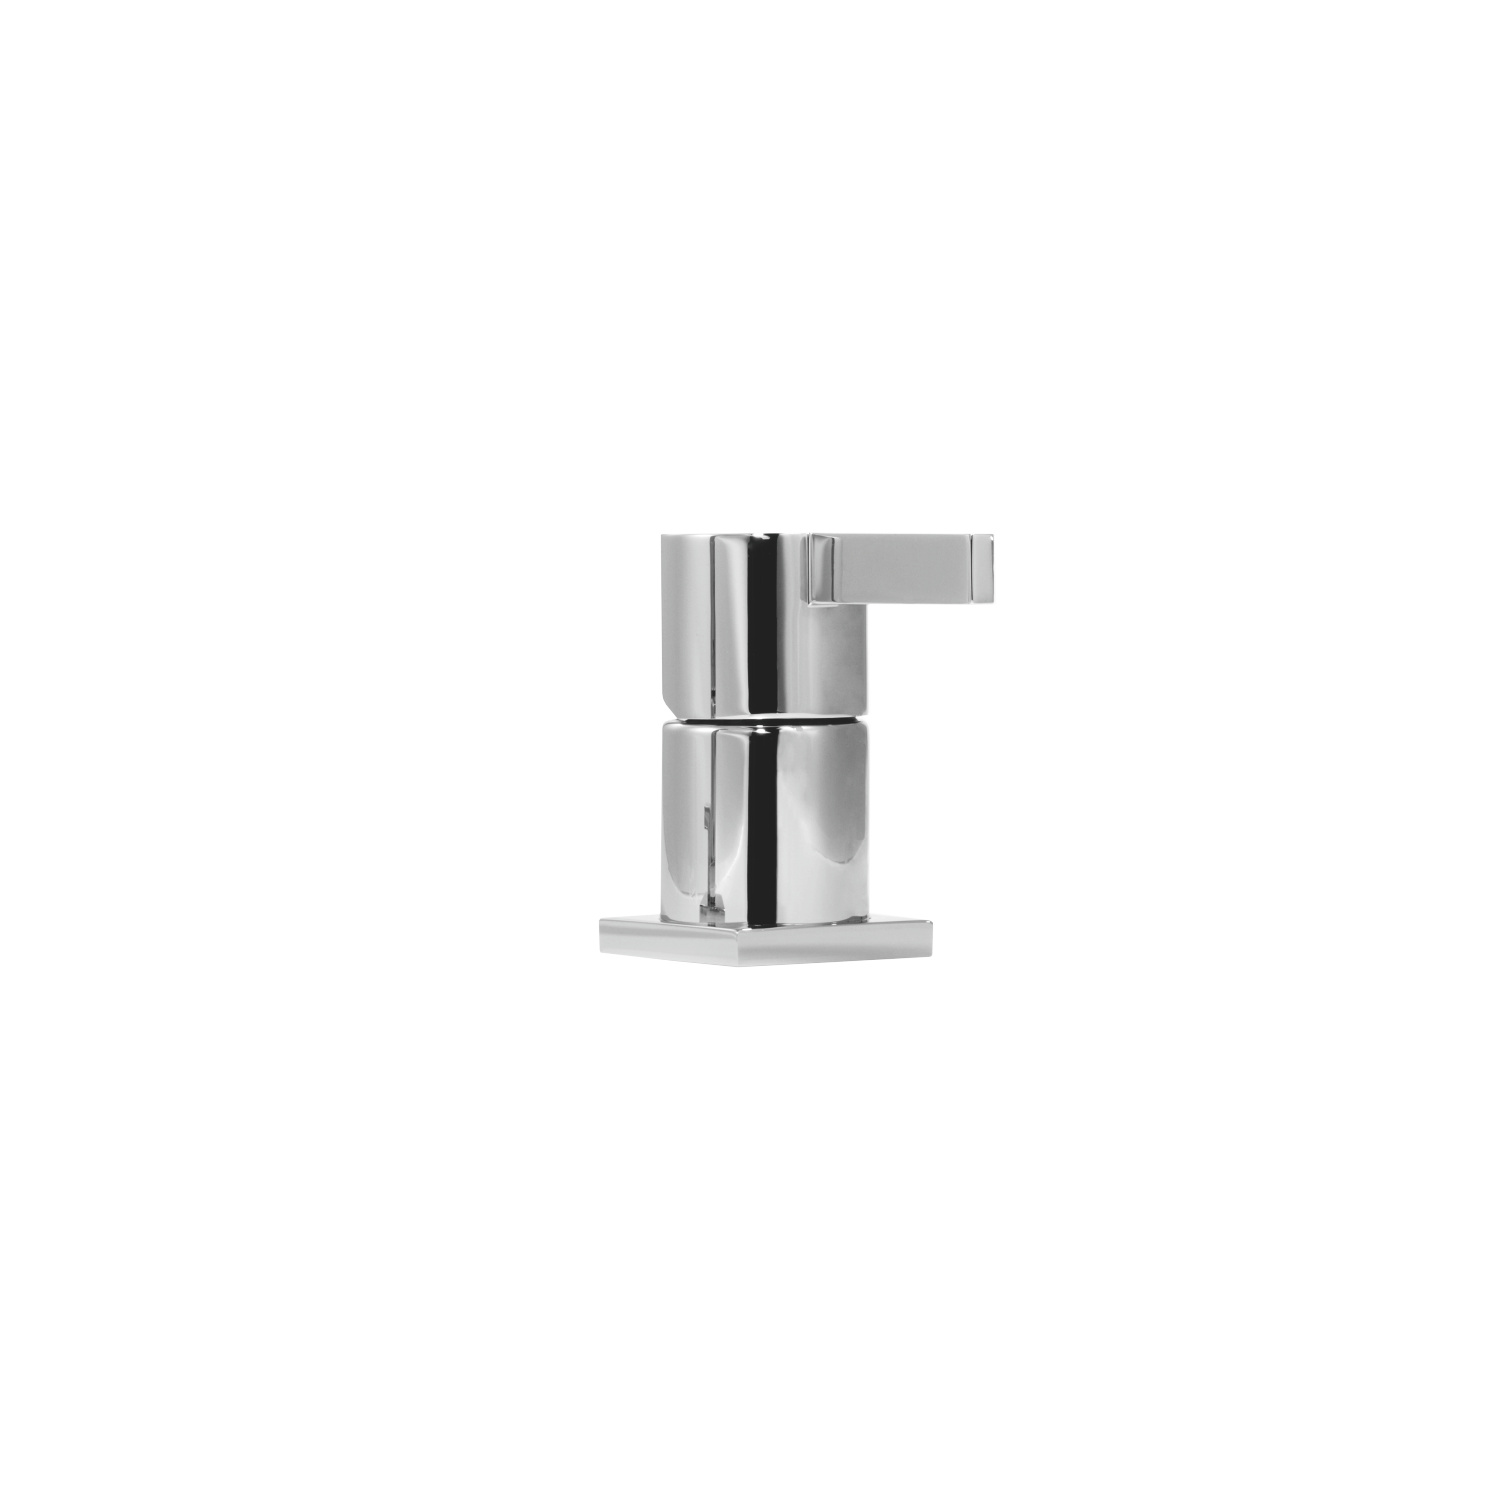 Single-lever bath mixer for bath rim or tile edge installation - platinum matt - 29 200 670-06